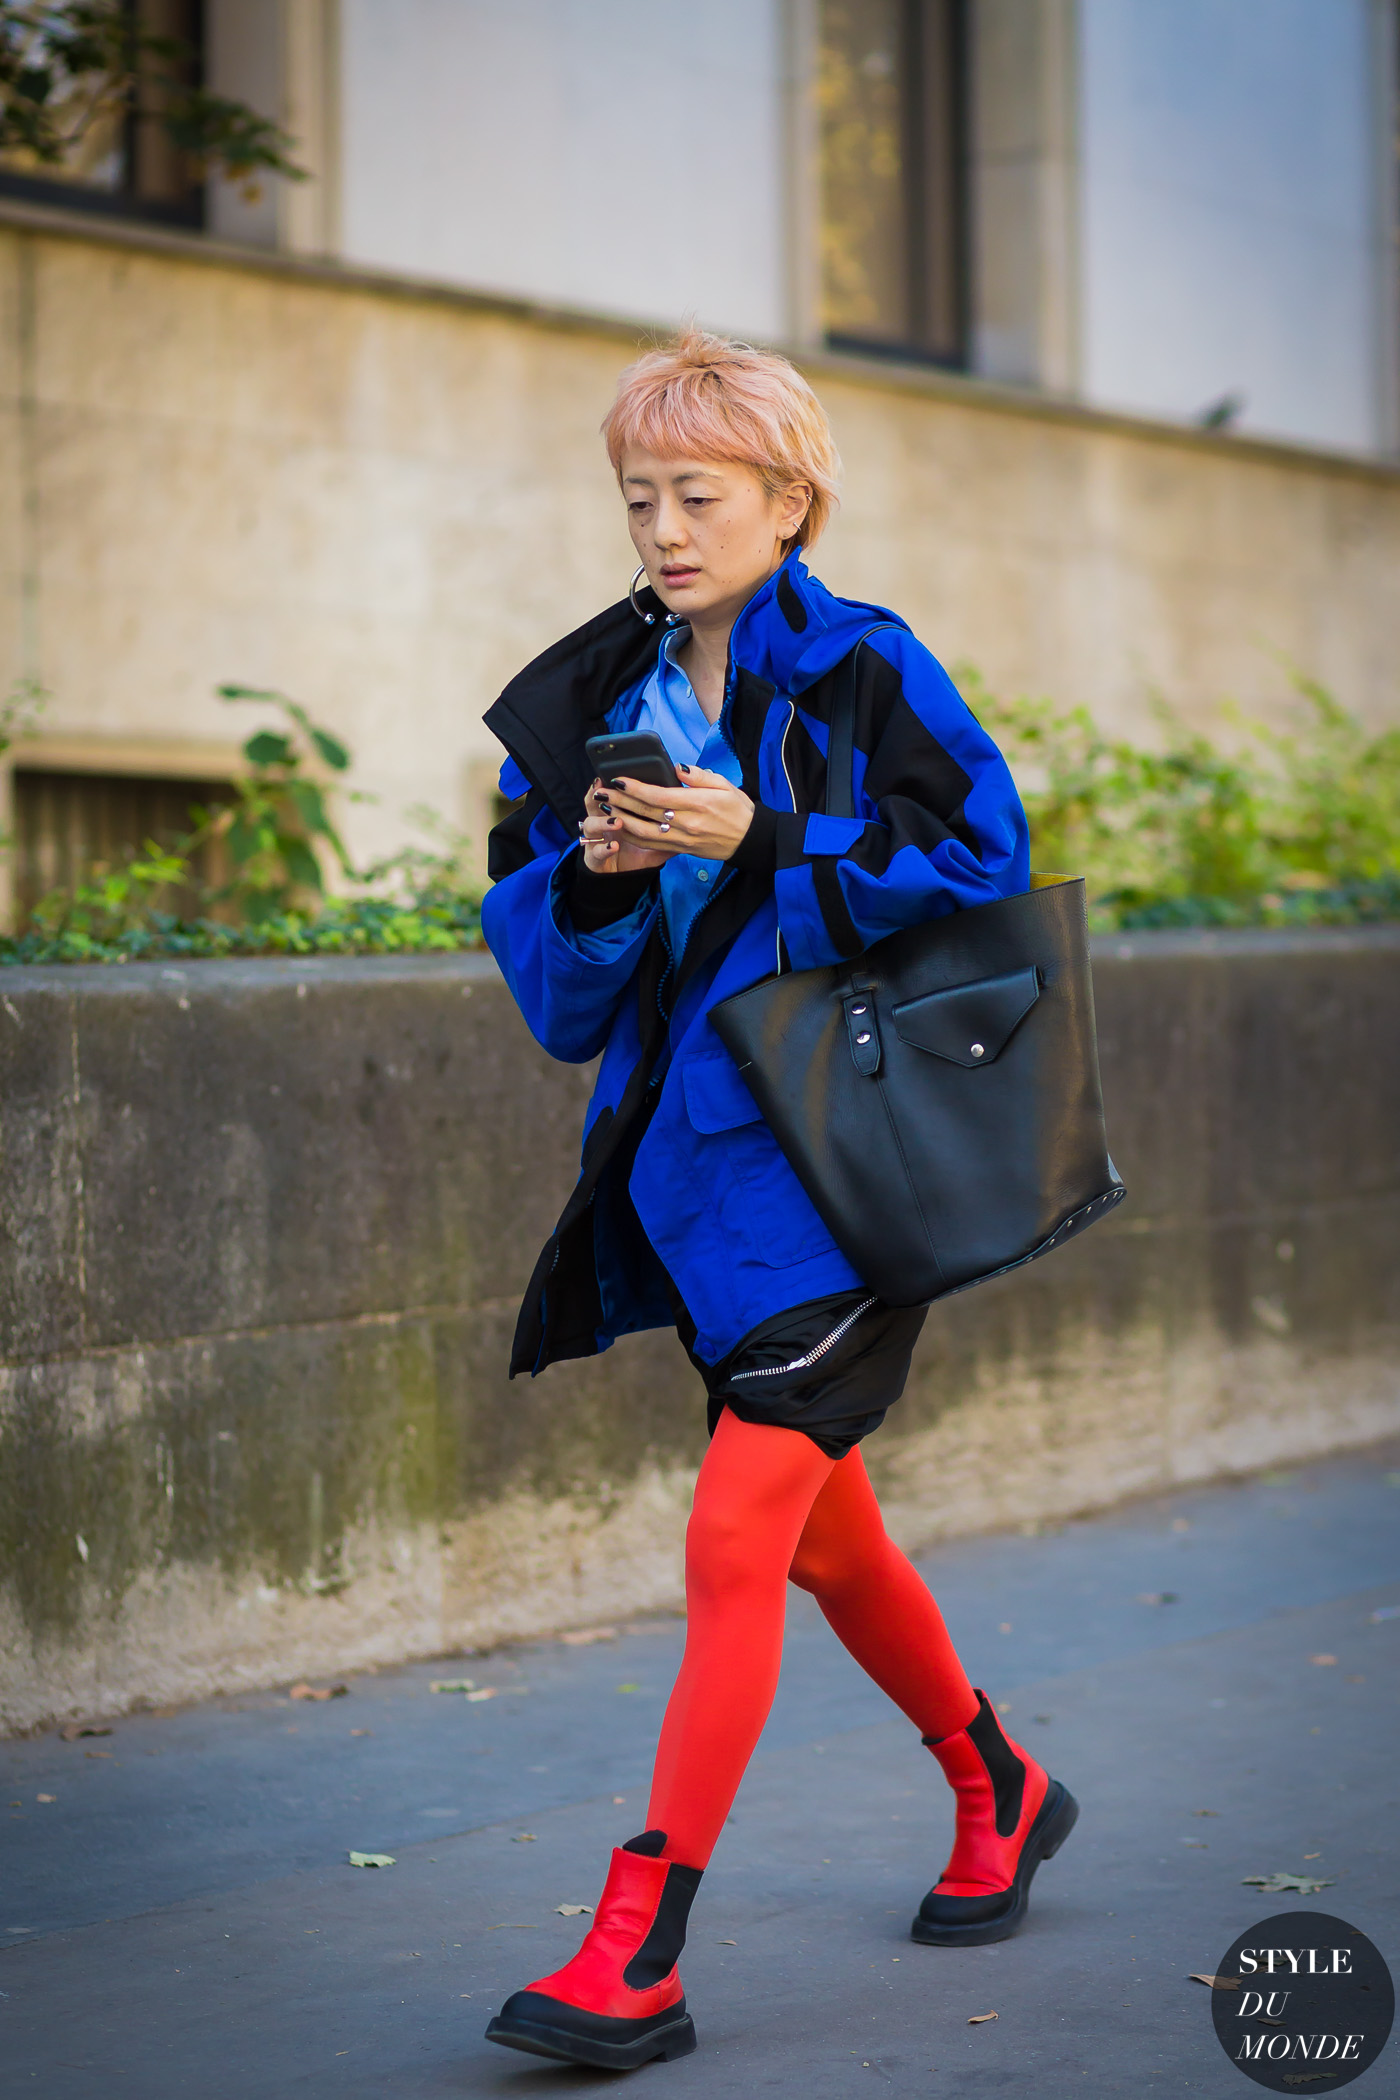 Itoi Kuriyama by STYLEDUMONDE Street Style Fashion Photography